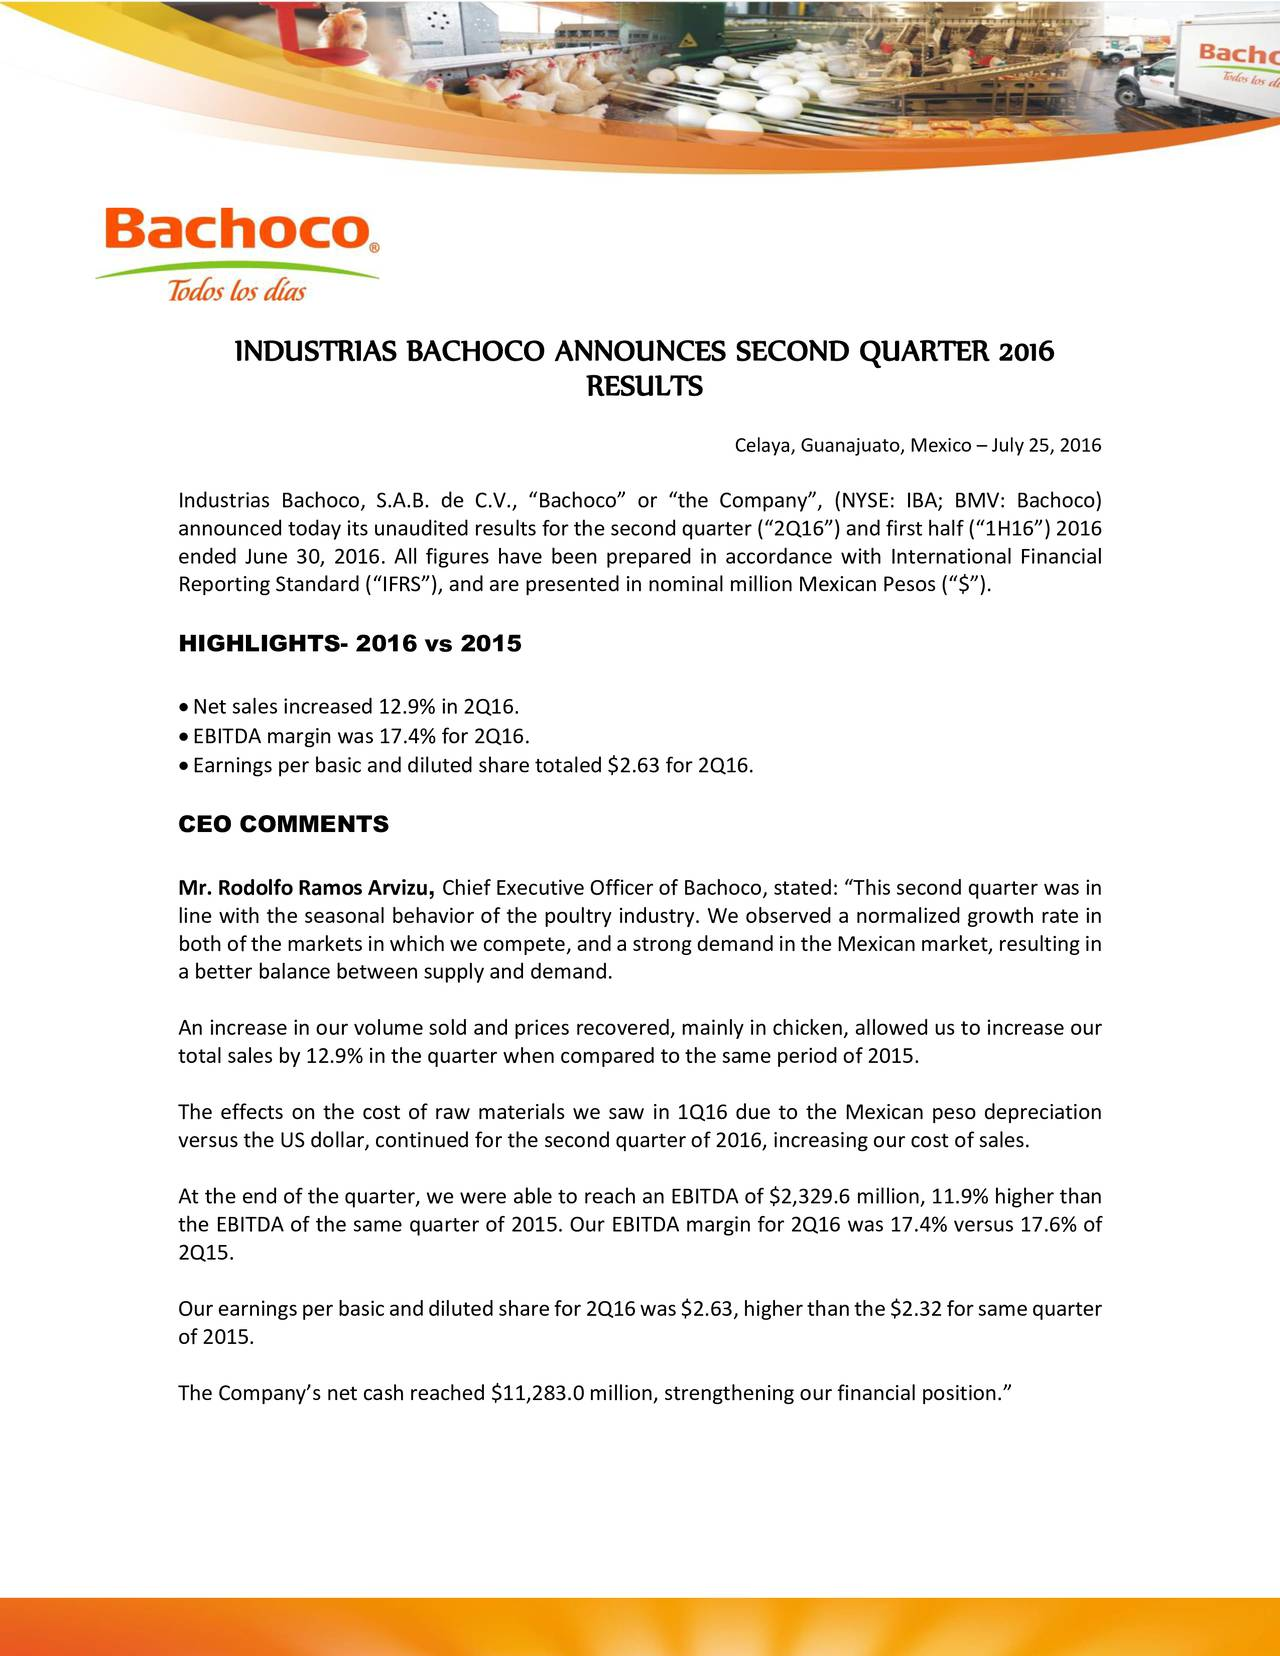 RESULTS Celaya, Guanajuato, Mexico  July 25, 2016 Industrias Bachoco, S.A.B. de C.V., Bachoco or the Company, (NYSE: IBA; BMV: Bachoco) announced today its unaudited results for the second quarter (2Q16) and first half (1H16) 2016 ended June 30, 2016. All figures have been prepared in accordance with International Financial Reporting Standard (IFRS), and are presented in nominal million Mexican Pesos ($). HIGHLIGHTS- 2016 vs 2015 Net sales increased 12.9% in 2Q16. EBITDA margin was 17.4% for 2Q16. Earnings per basic and diluted share totaled $2.63 for 2Q16. CEO COMMENTS Mr. Rodolfo Ramos Arvizu, Chief Executive Officer of Bachoco, stated: This second quarter was in line with the seasonal behavior of the poultry industry. We observed a normalized growth rate in both of the markets in which we compete, and a strong demand in the Mexicanmarket, resulting in a better balance between supply and demand. An increase in our volume sold and prices recovered, mainly in chicken, allowed us to increase our total sales by 12.9% in the quarter when compared to the same period of 2015. The effects on the cost of raw materials we saw in 1Q16 due to the Mexican peso depreciation versus the US dollar, continued for the second quarter of 2016, increasing our cost of sales. At the end of the quarter, we were able to reach an EBITDA of $2,329.6 million, 11.9% higher than the EBITDA of the same quarter of 2015. Our EBITDA margin for 2Q16 was 17.4% versus 17.6% of 2Q15. Ourearningsperbasicanddilutedsharefor2Q16was$2.63,higherthanthe$2.32forsamequarter of 2015. The Companys net cash reached $11,283.0 million, strengthening our financial position.